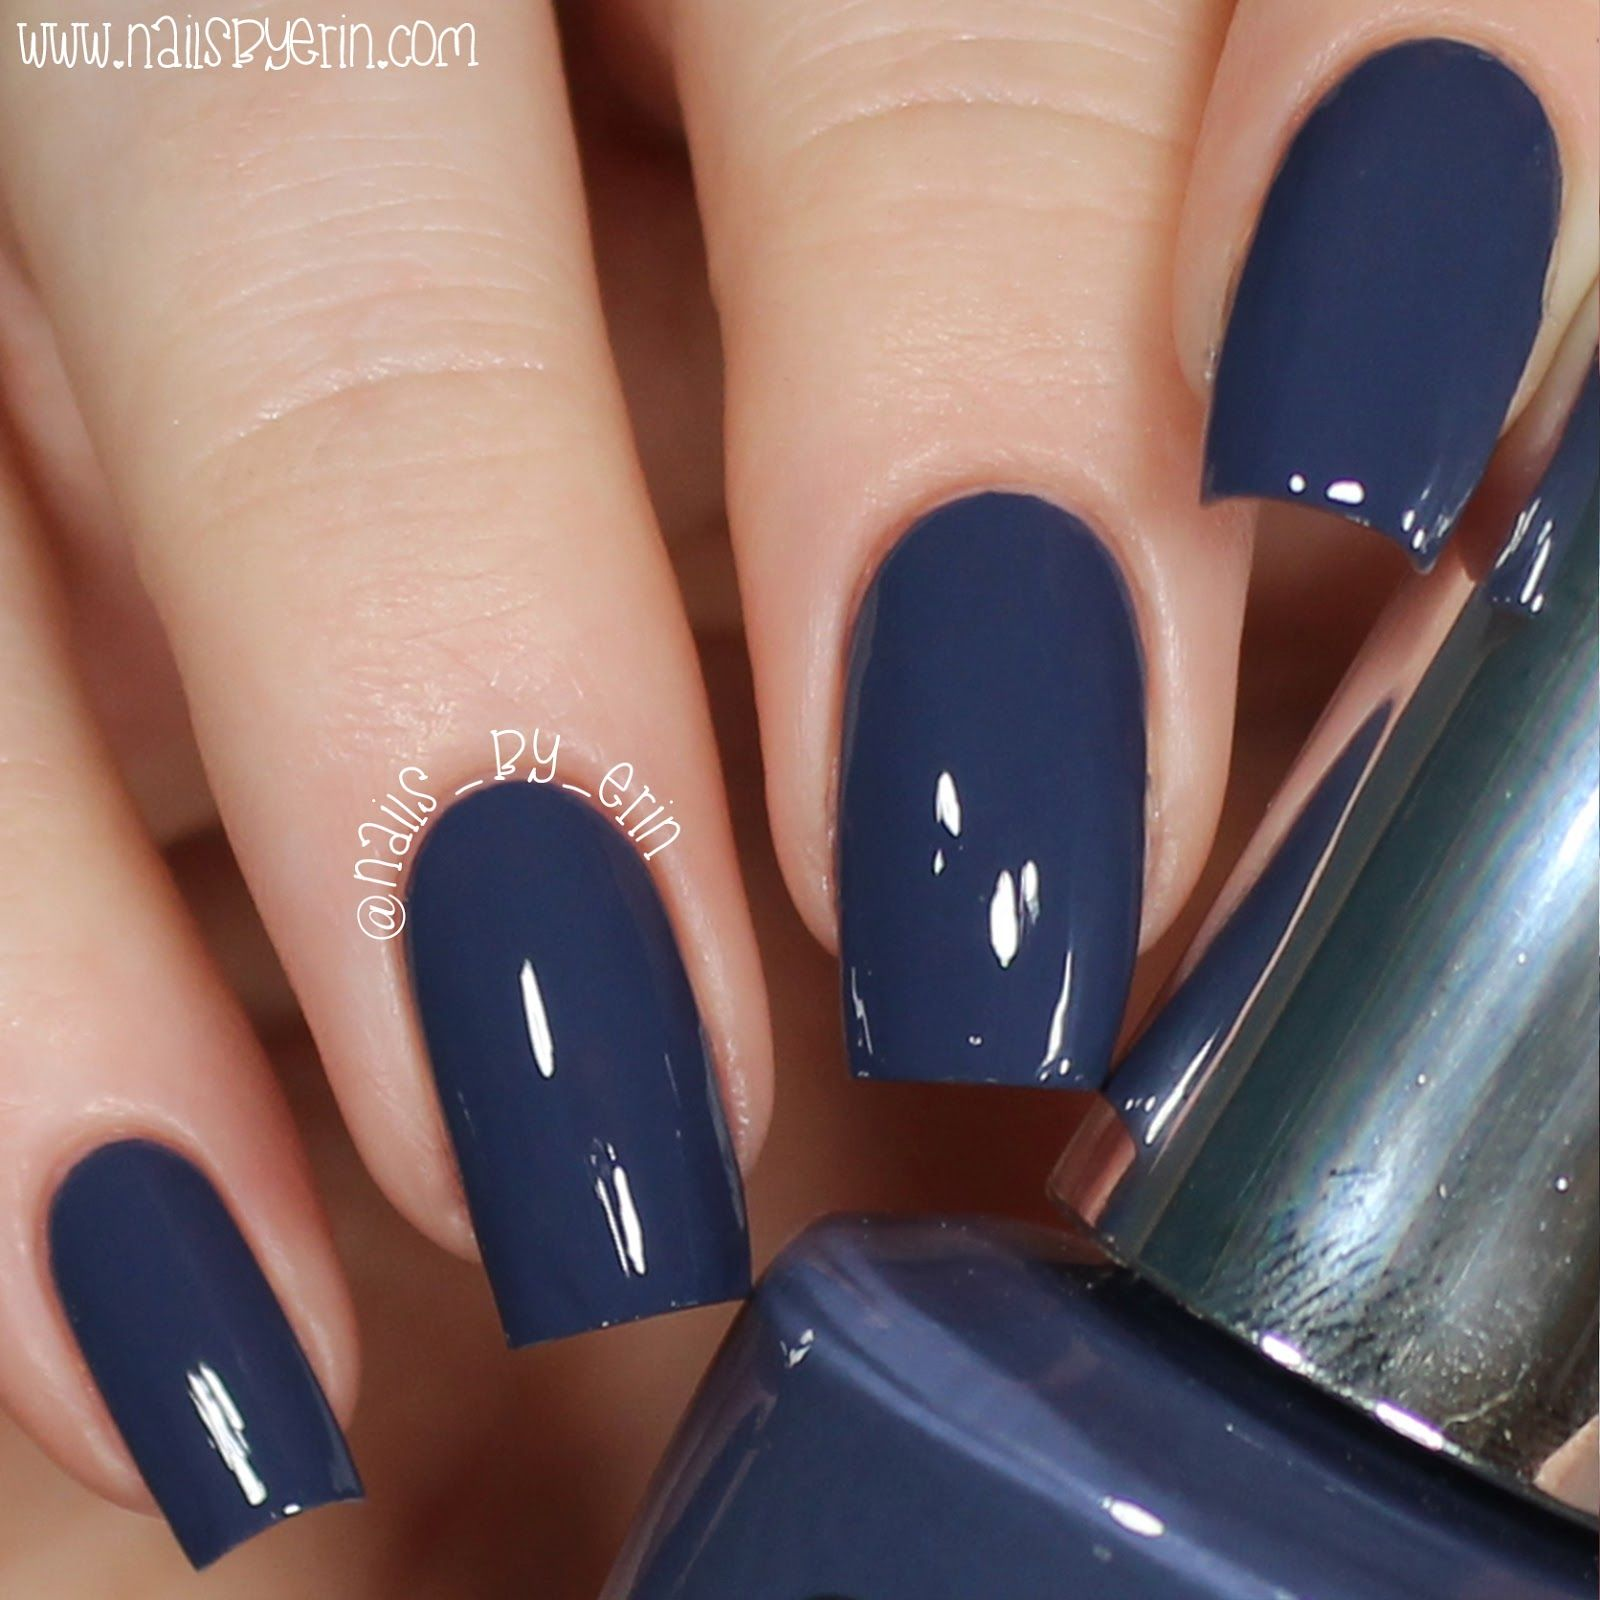 Opi Quot Less Is Norse Quot Nailsbyerin Nail Polish How To Do Nails Simple Nails